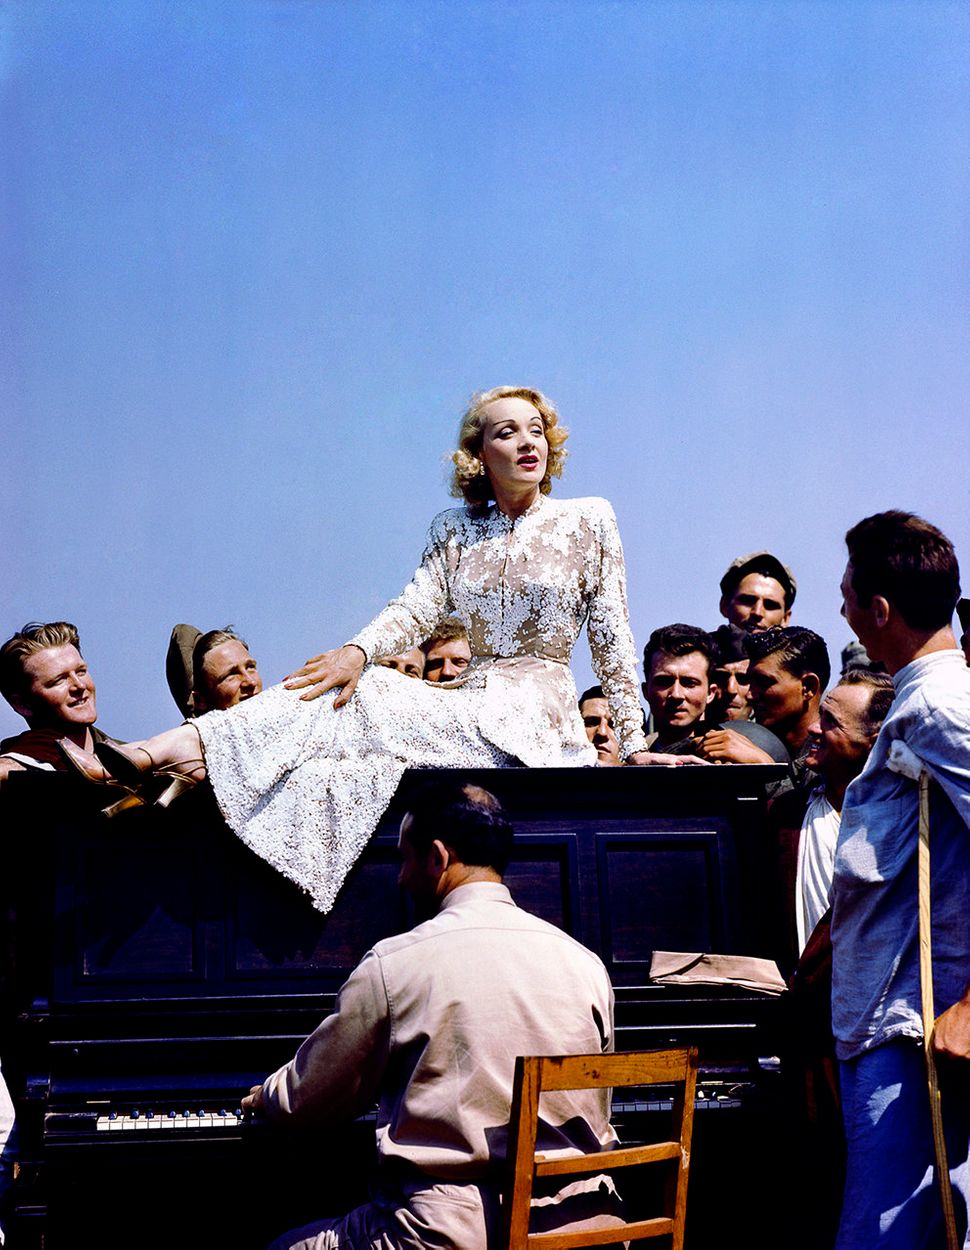 German-born singer and actress Marlene Dietrich puts on a show for wounded American soldiers at a military hospital on the It